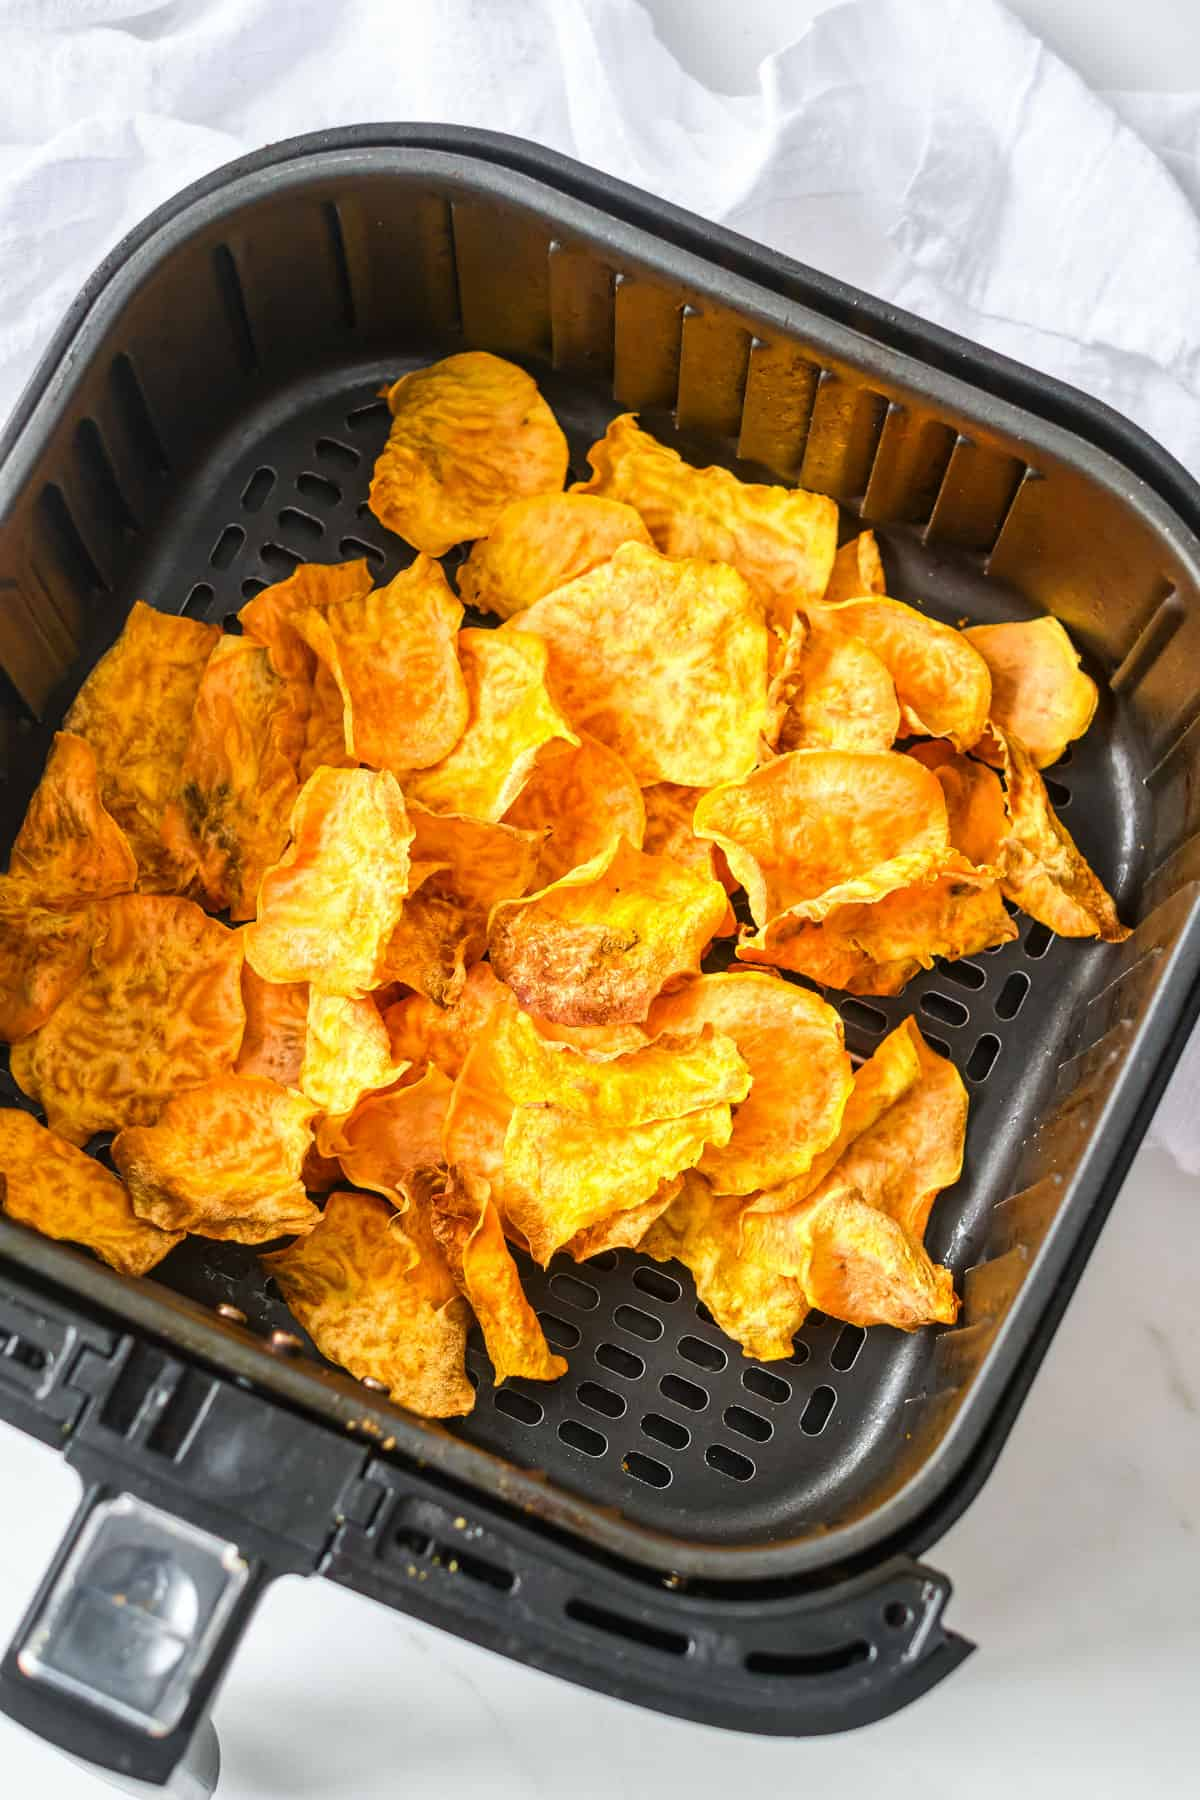 the finished air fryer sweet potato chips inside the air fryer basket